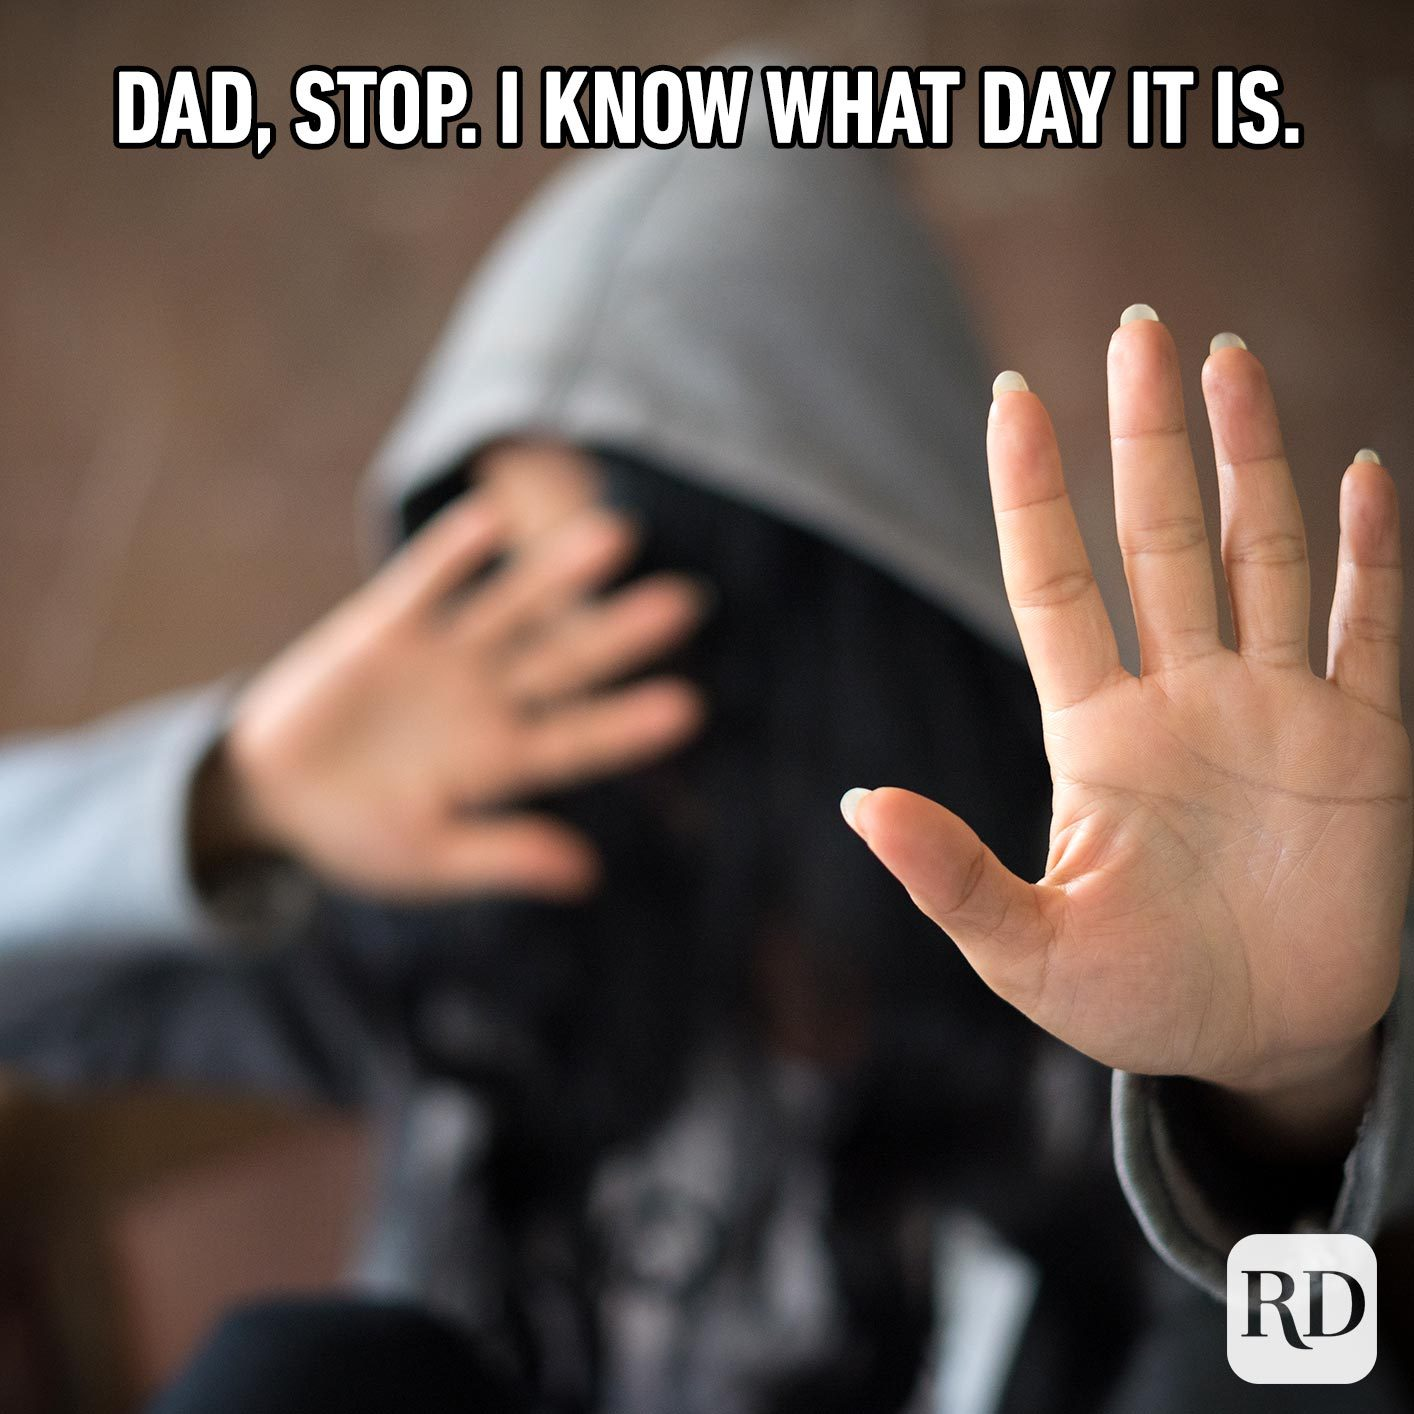 Person holding hand toward the camera. Meme text: Dad, stop. I know what day it is.